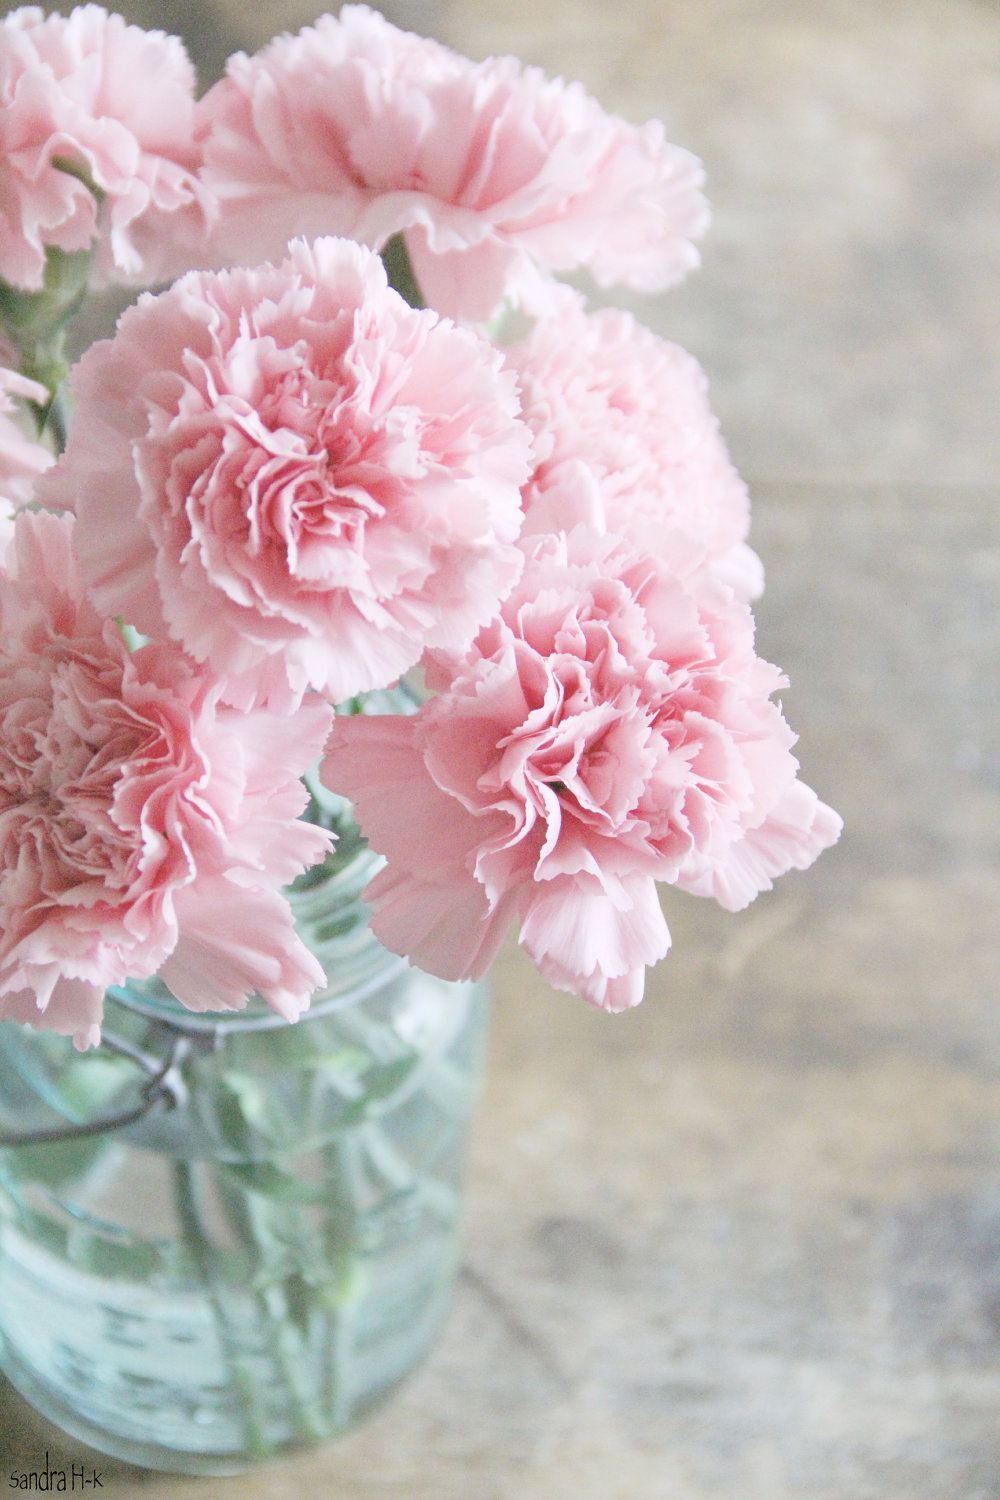 pink carnations in mason jar 8x12 fine art nature photography print shabby chic flowers spring. Black Bedroom Furniture Sets. Home Design Ideas